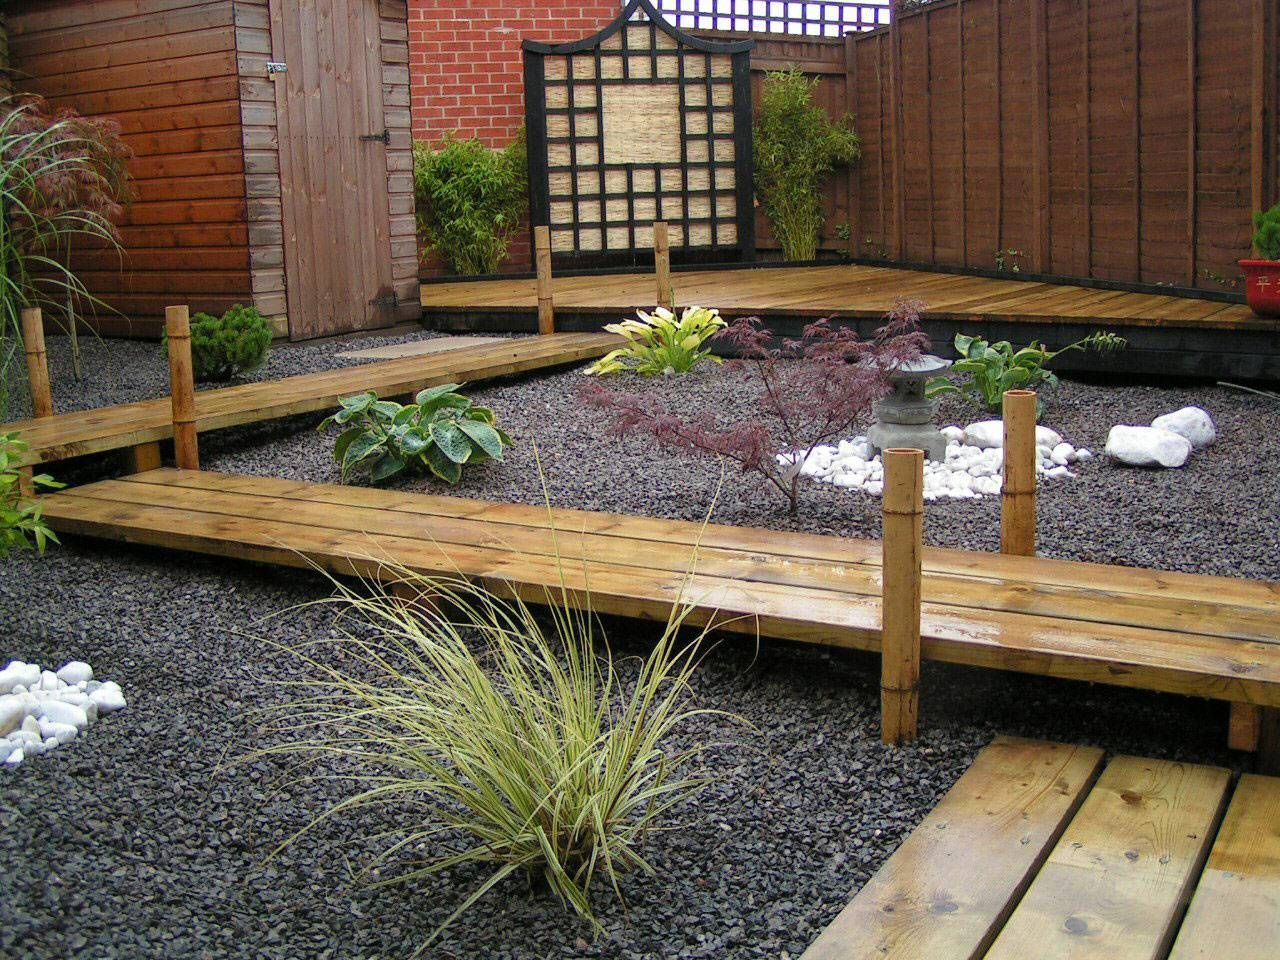 Japanese Garden Design Japanese Garden With Wood Pathway For Backyard Design  Ideas - Japanese Garden Design Japanese Garden With Wood Pathway For